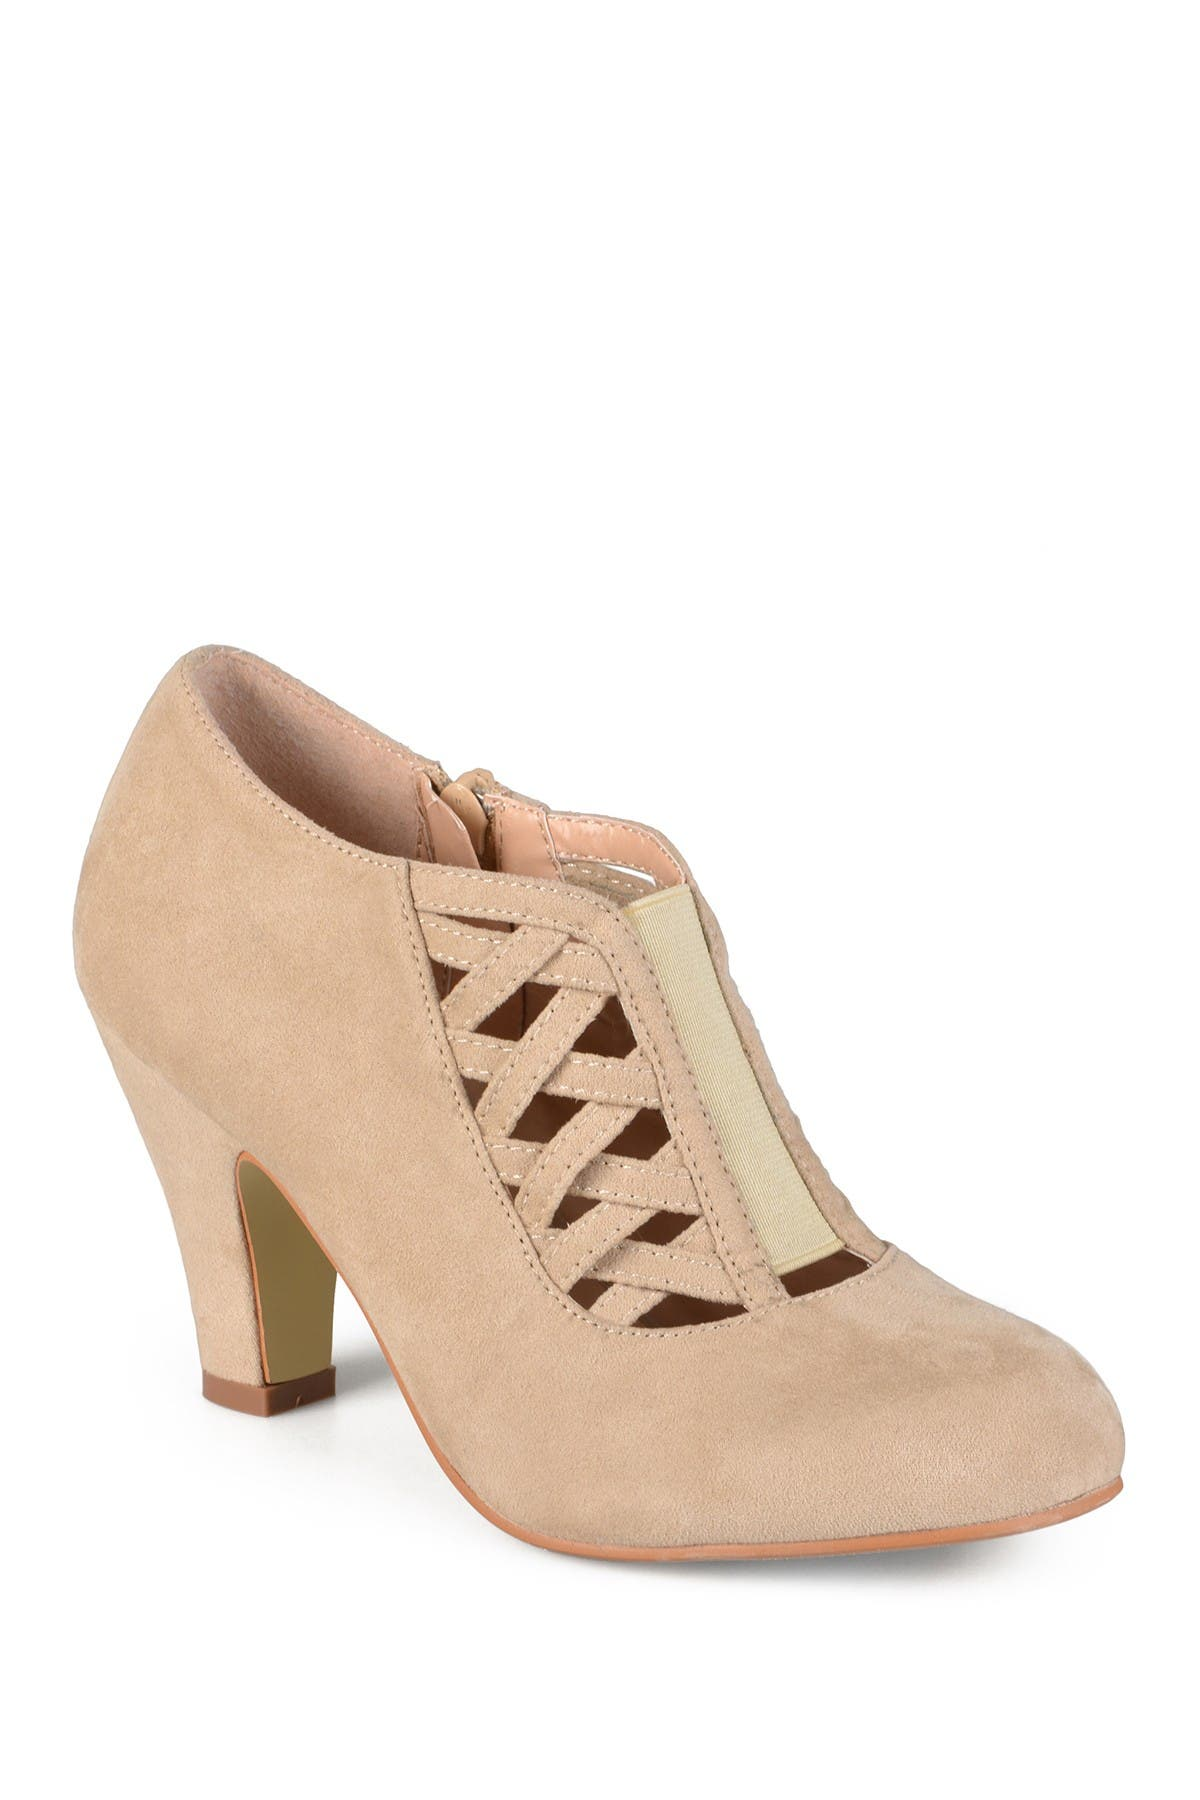 Image of JOURNEE Collection Piper Caged Ankle Bootie - Wide Width